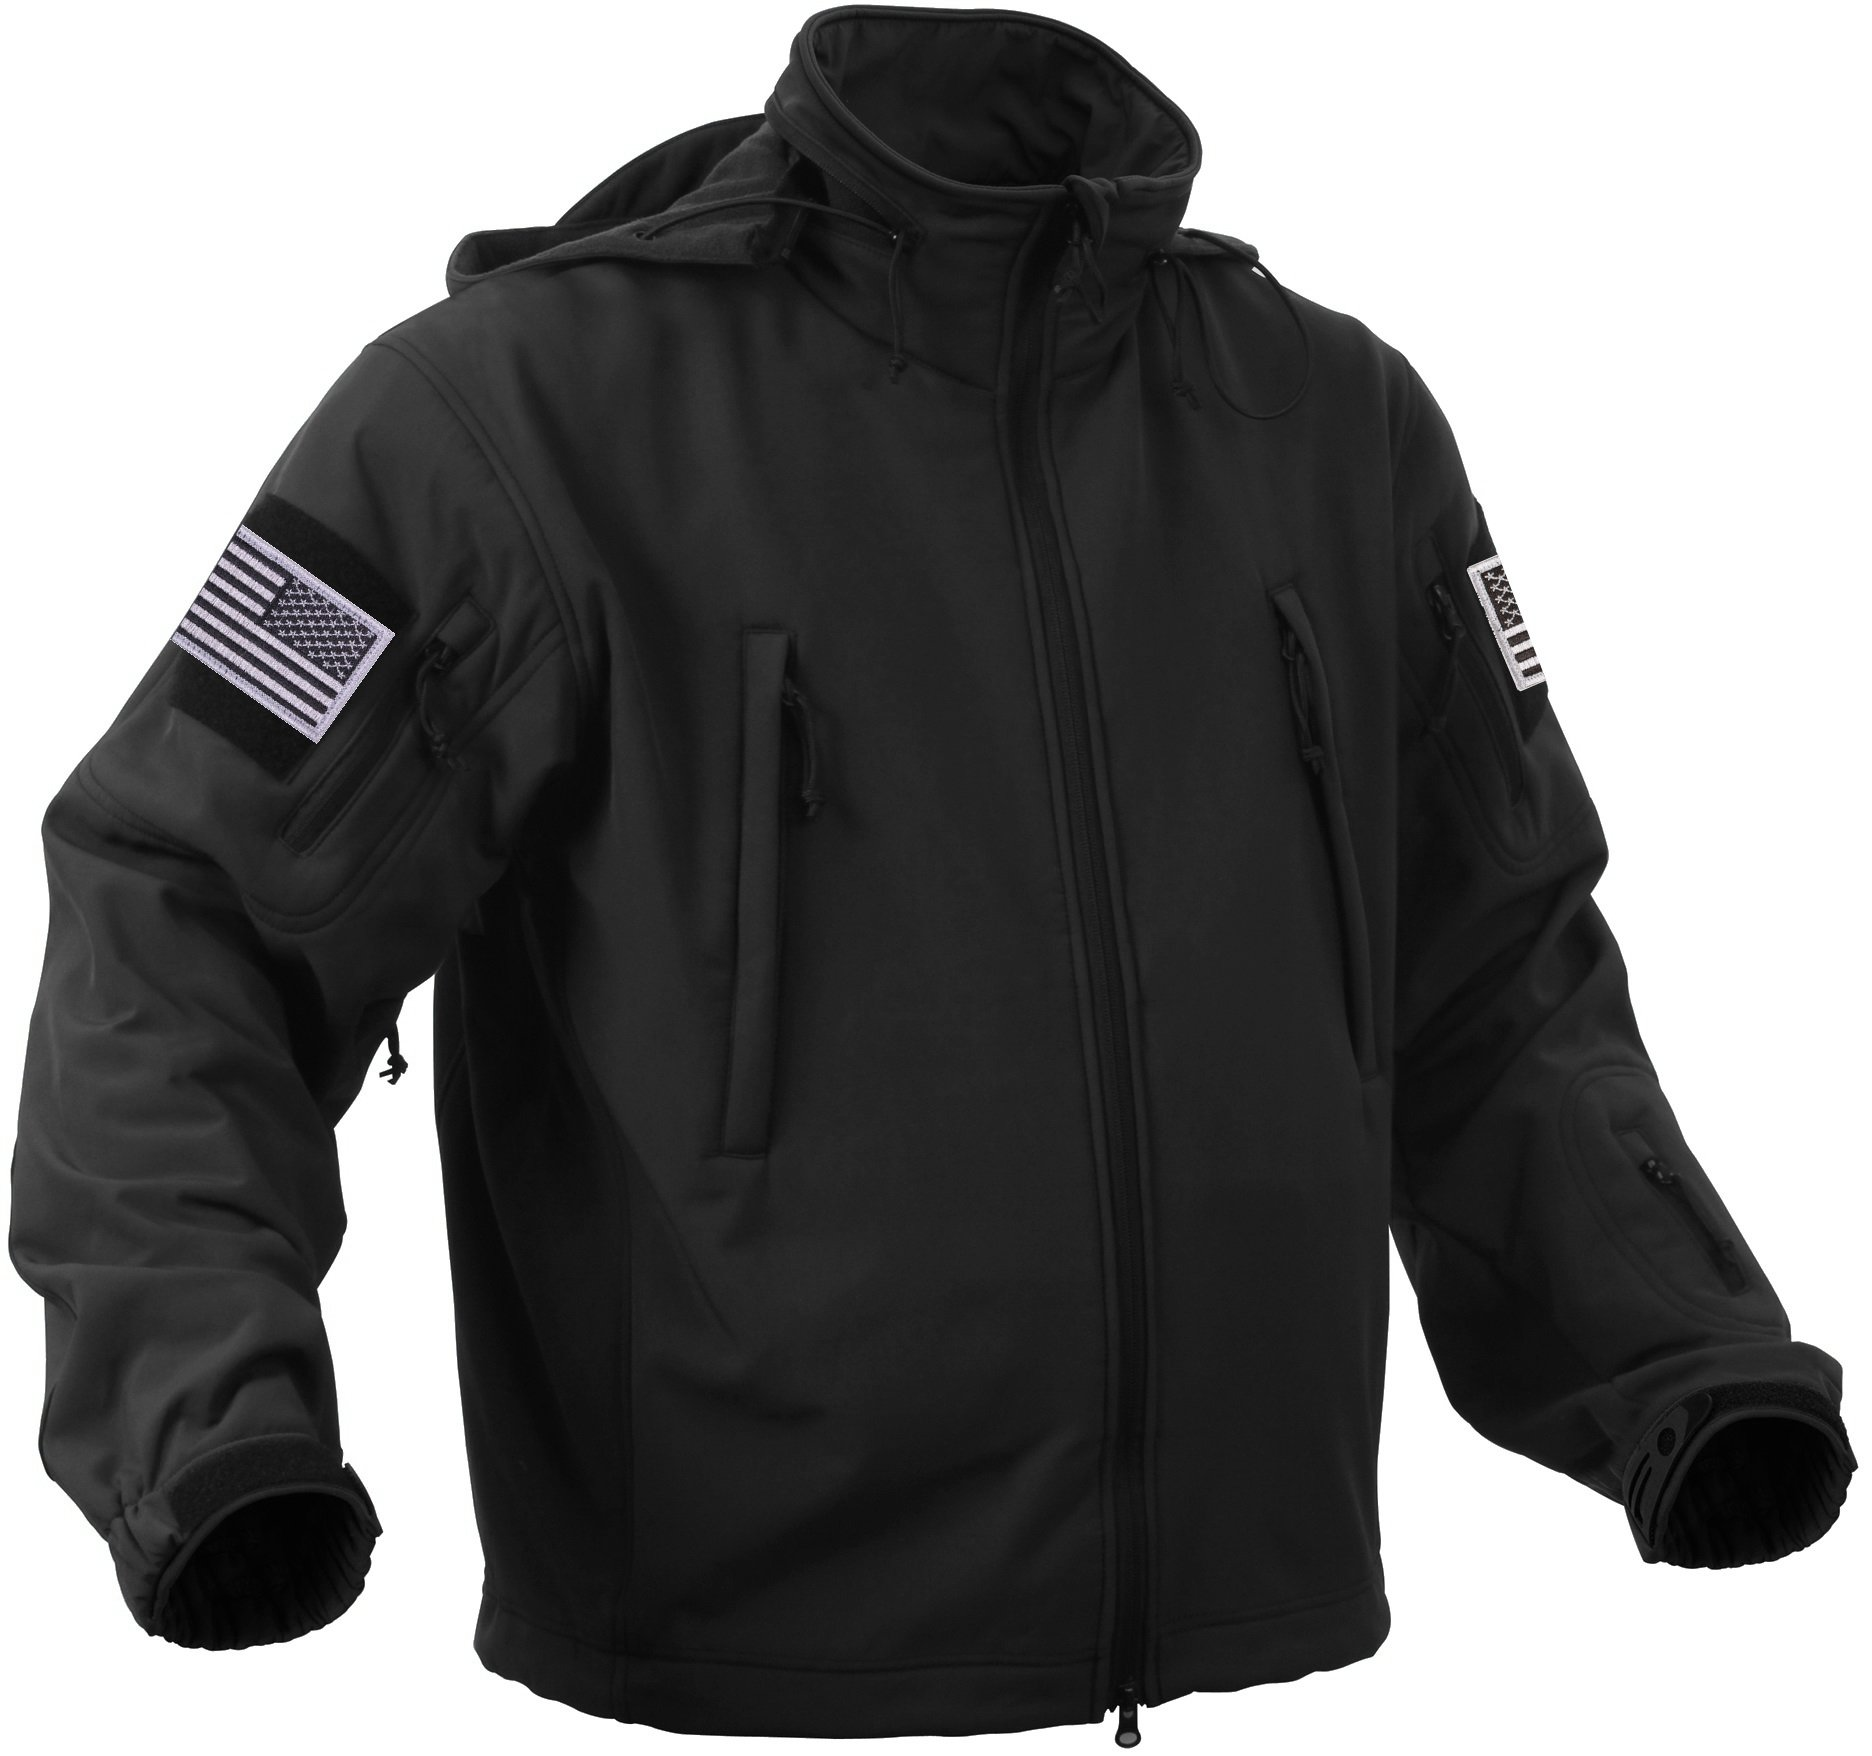 Rothco Special Ops Tactical Soft Shell Jacket with Patches Bundle (XX-Large, Black with Silver Patches) by Rothco